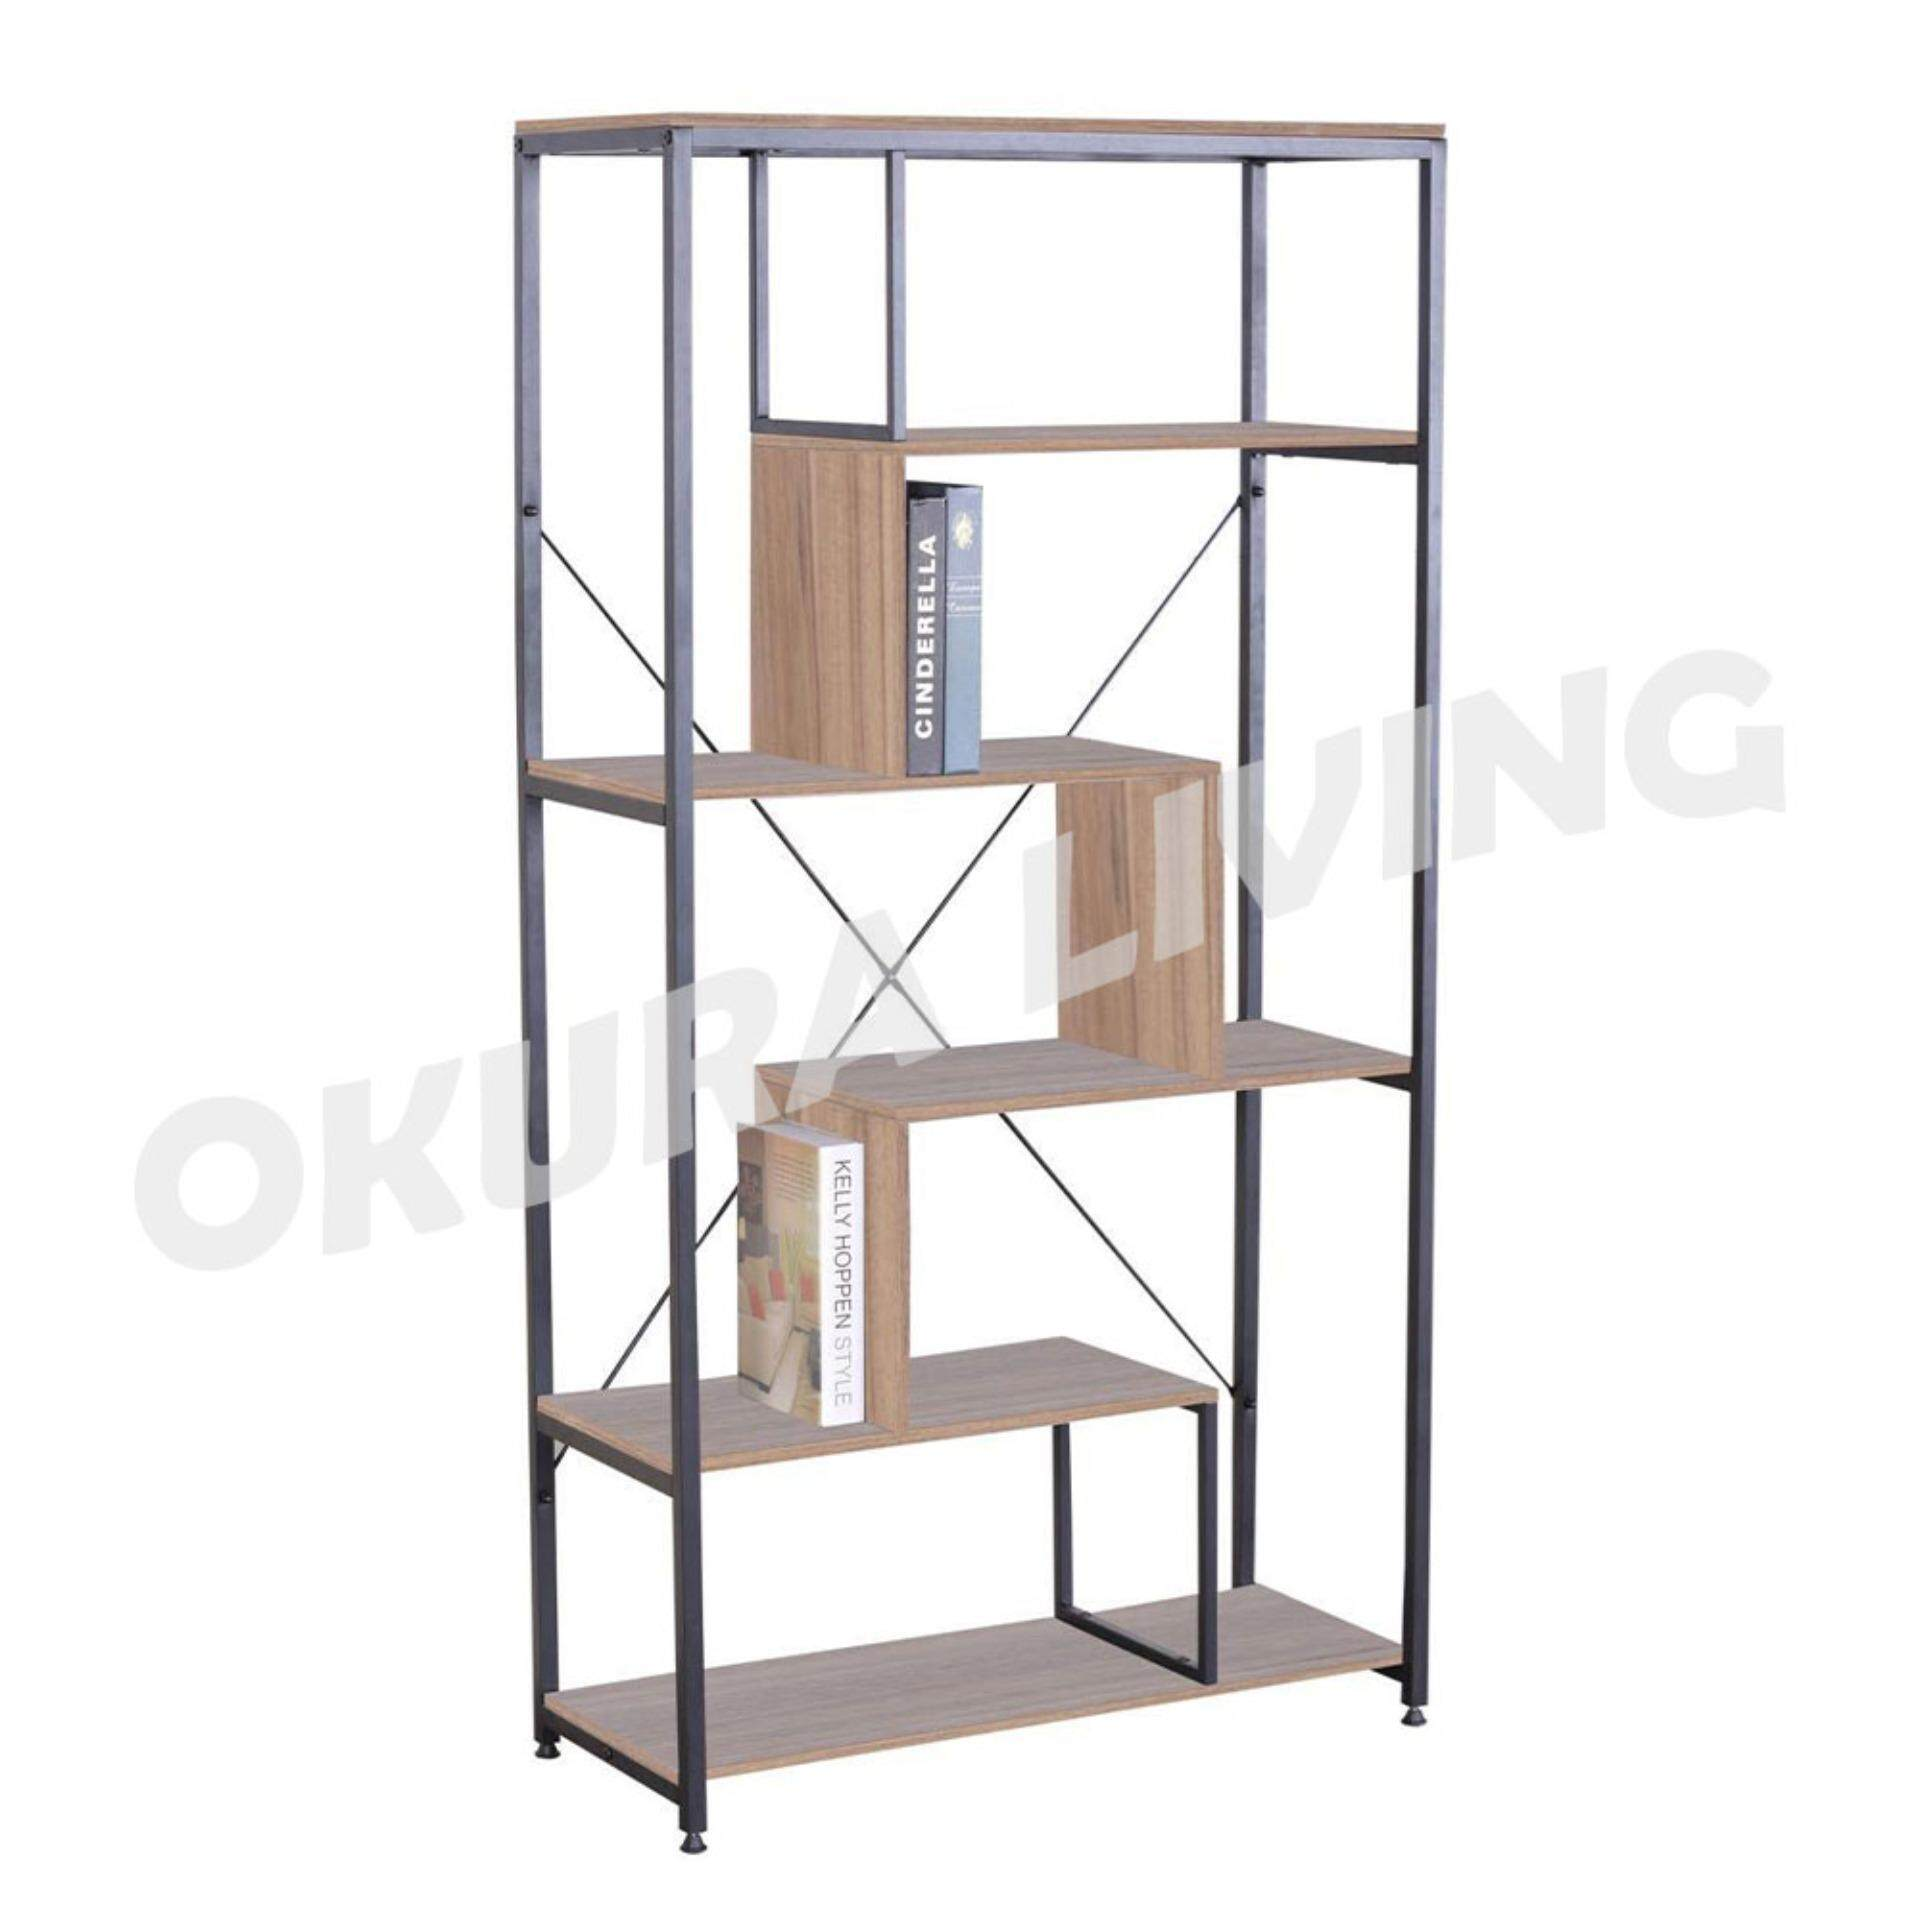 OKURA Modern Designed Multipurpose Book Shelf Home Office